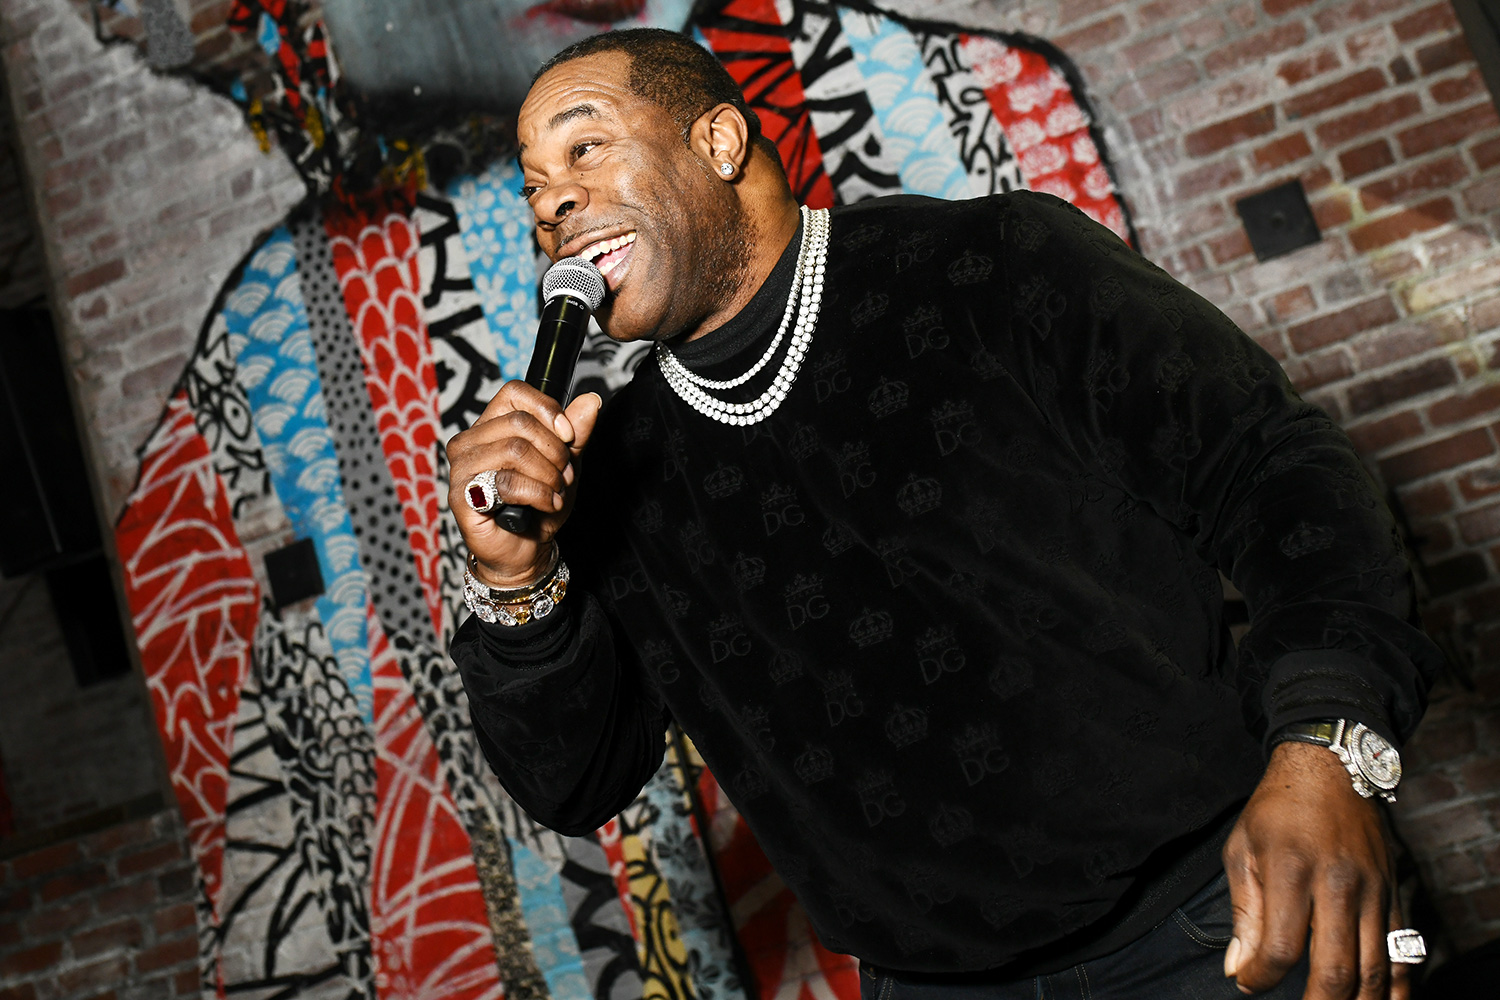 Busta Rhymes Performs at Teaching Matters Celebrates A Night Out At TAO Downtown To Benefit Early Reading Featuring Busta Rhymes at TAO Downtown on February 20, 2020 in New York City